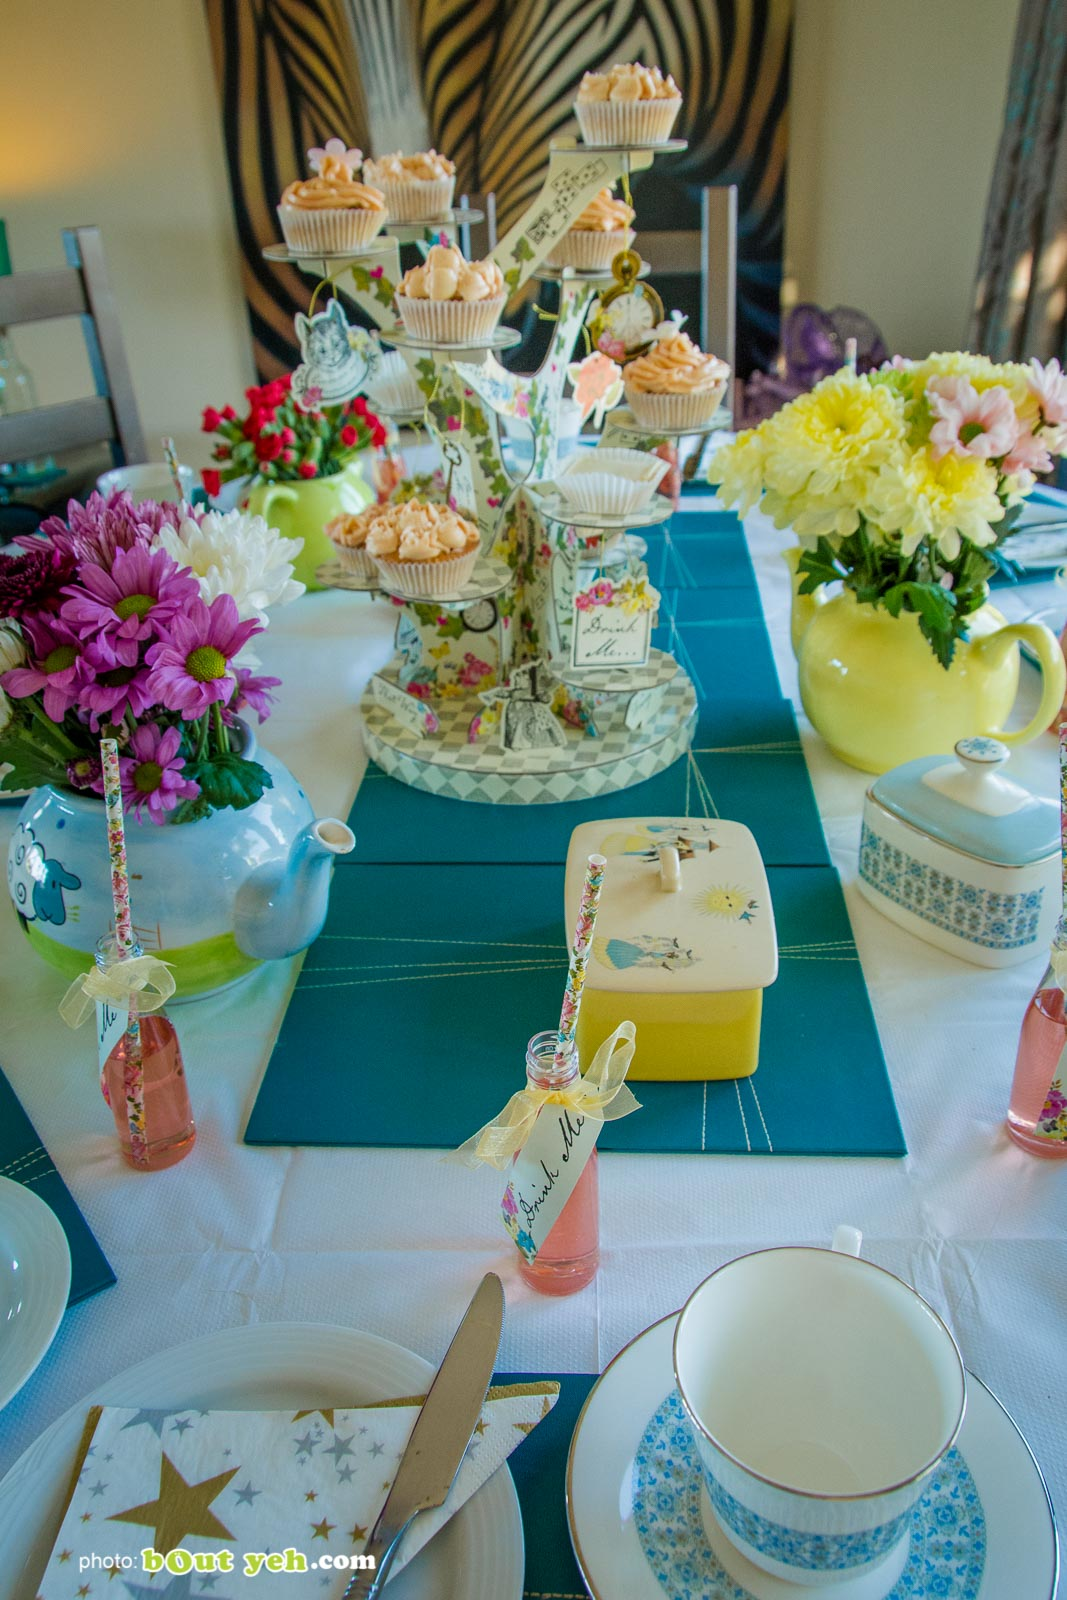 Alice In Wonderland themed party table at the Bout Yeh Brexit Mad Hatters Tea Party - photo 9229 by Bout Yeh photographers and video production Belfast Northern Ireland